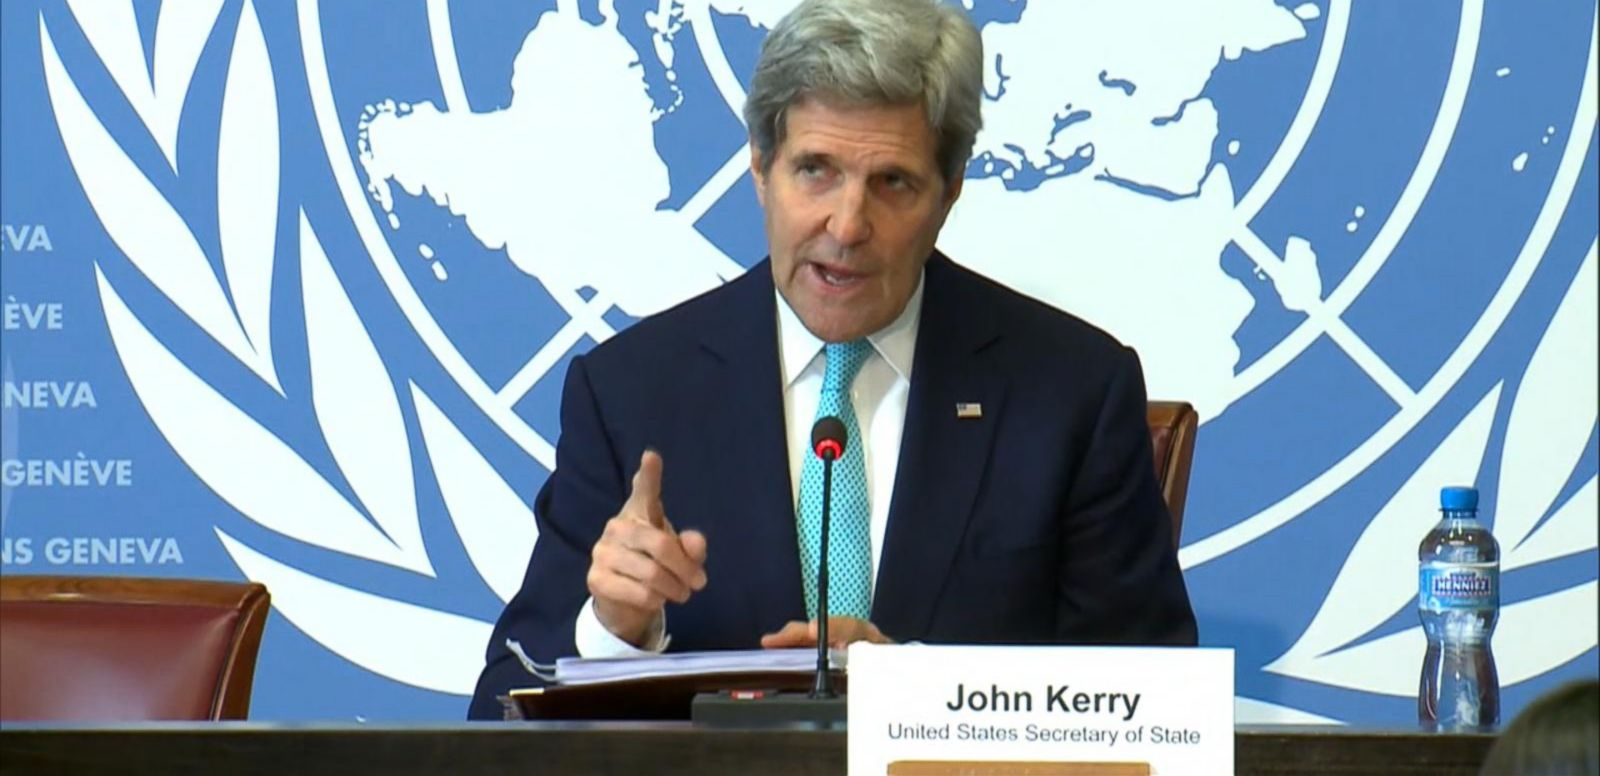 VIDEO: John Kerry: Unless Iran Makes the Difficult Decisions There 'Won't Be a Deal'